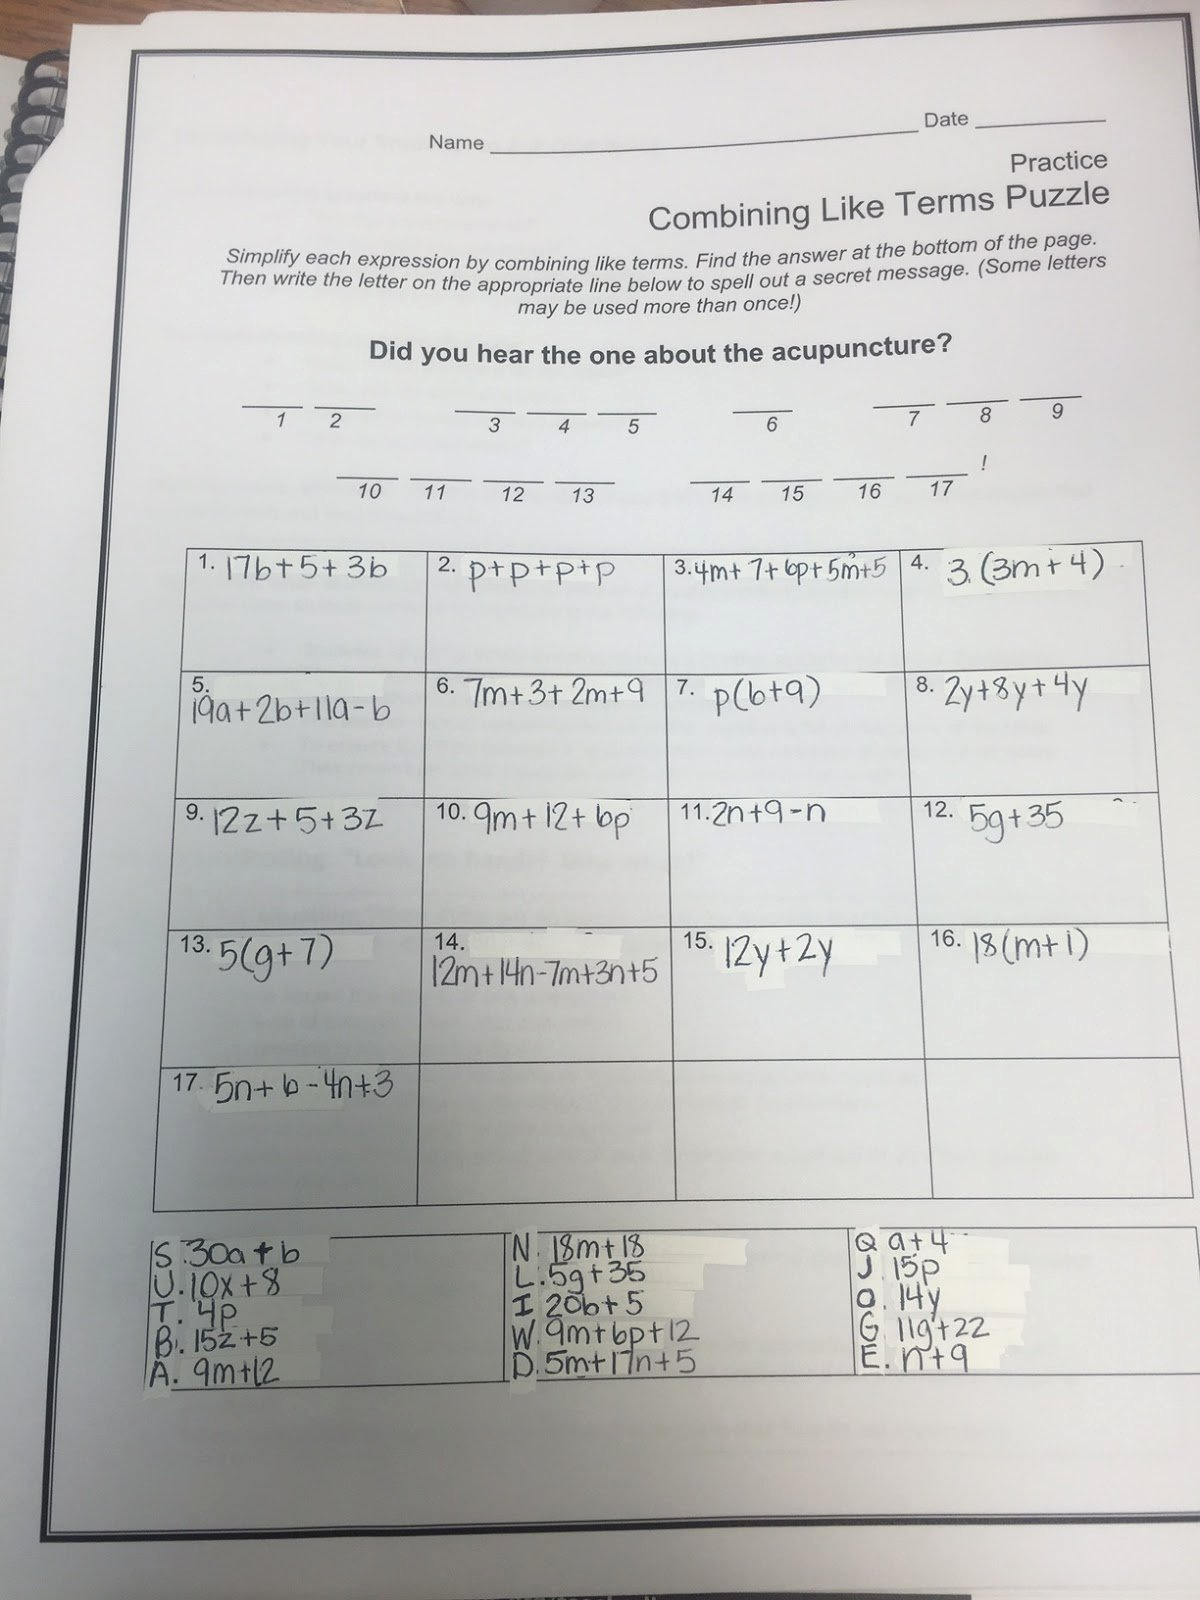 Combining Like Terms Practice Worksheet Elegant Mrs White S 6th Grade Math Blog Bining Like Terms